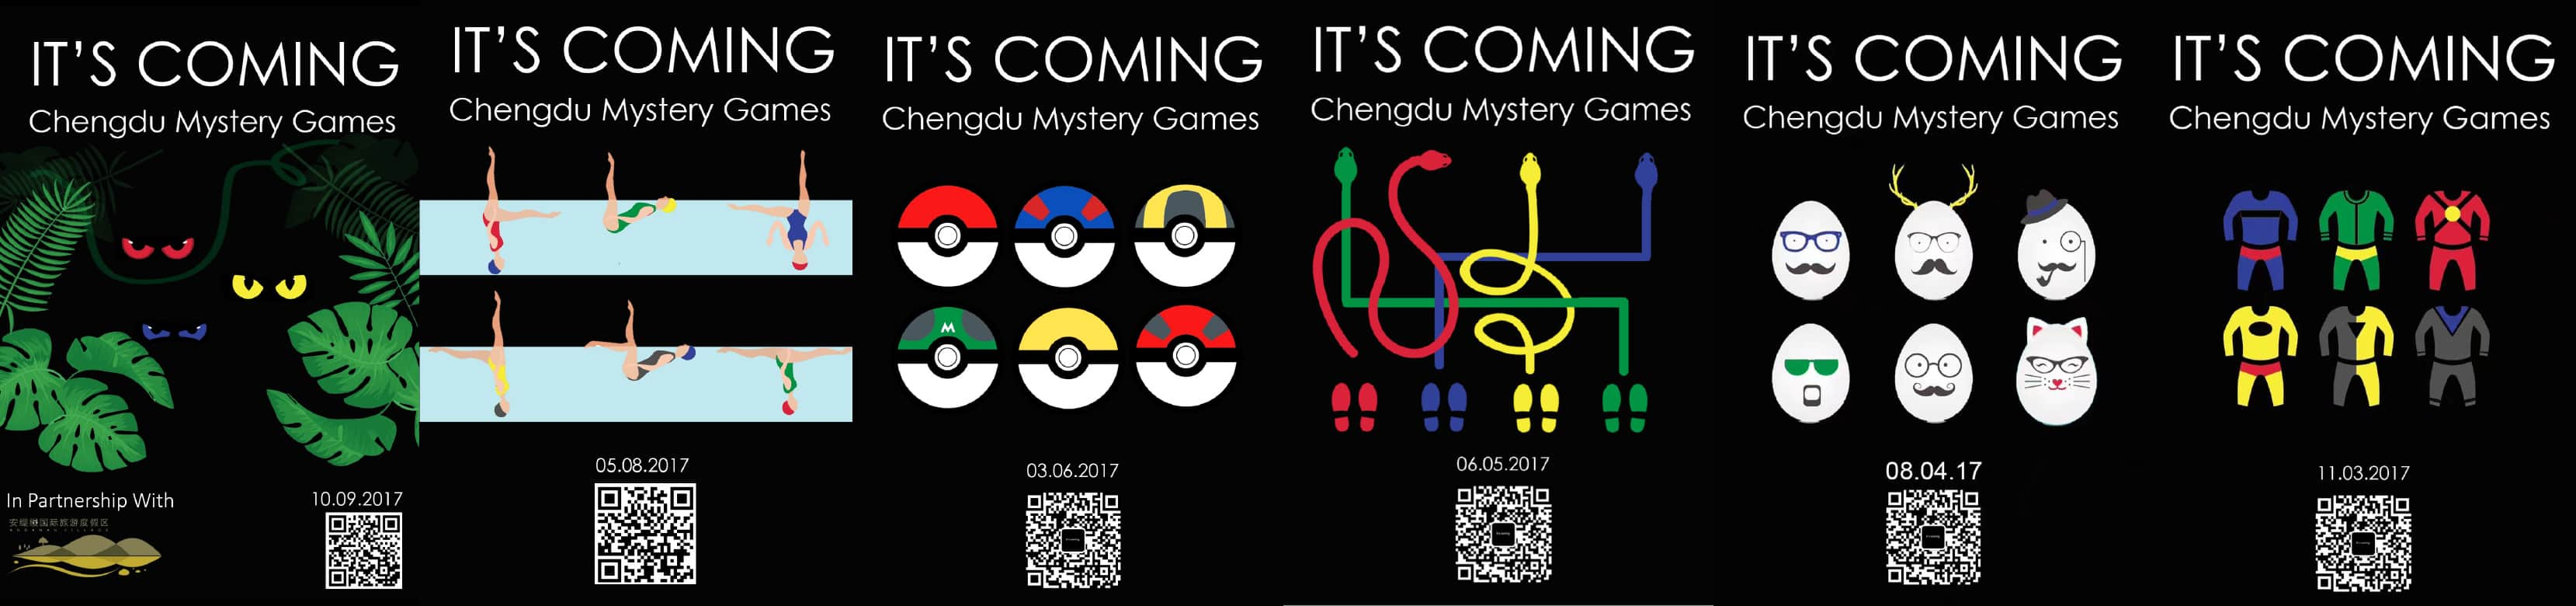 Chengdu Mystery Games | It's Coming | chengdu Expat